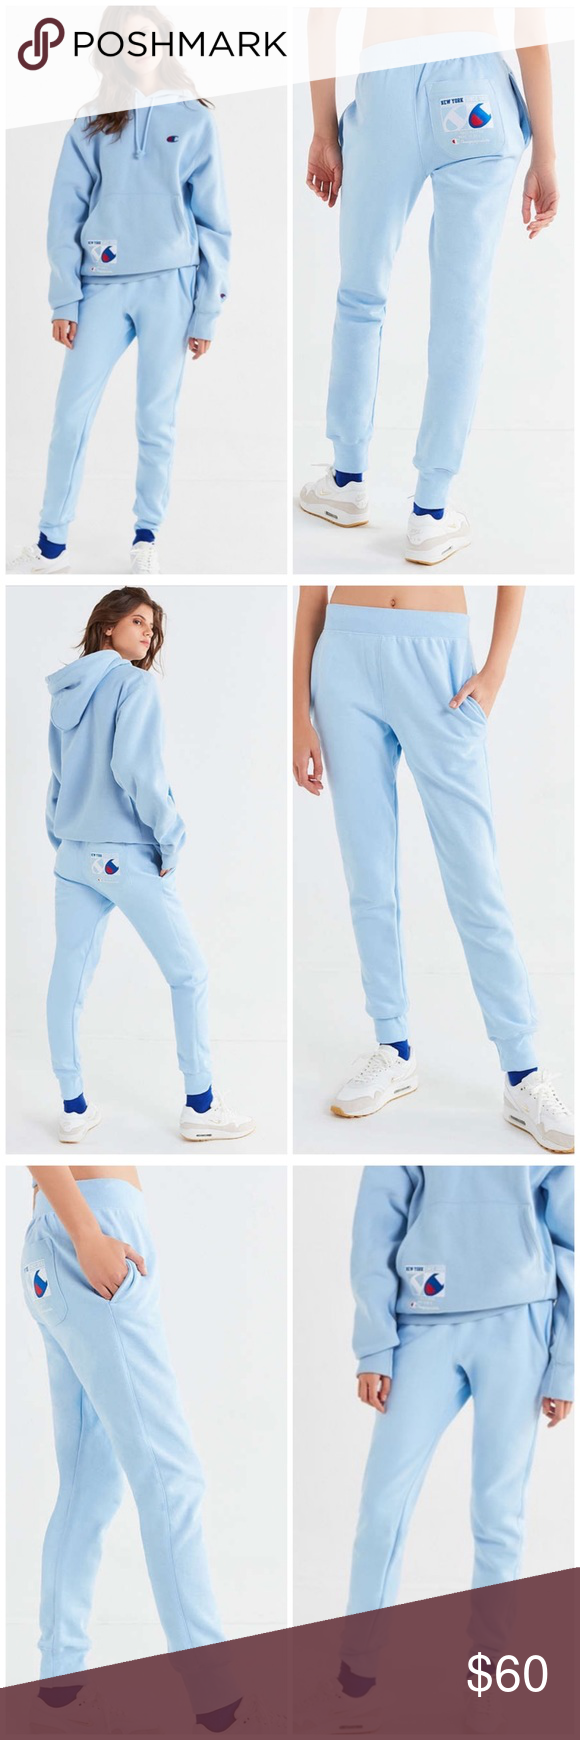 CHAMPION x UO Reverse Weave Jogger Sweat Pants CHAMPION x